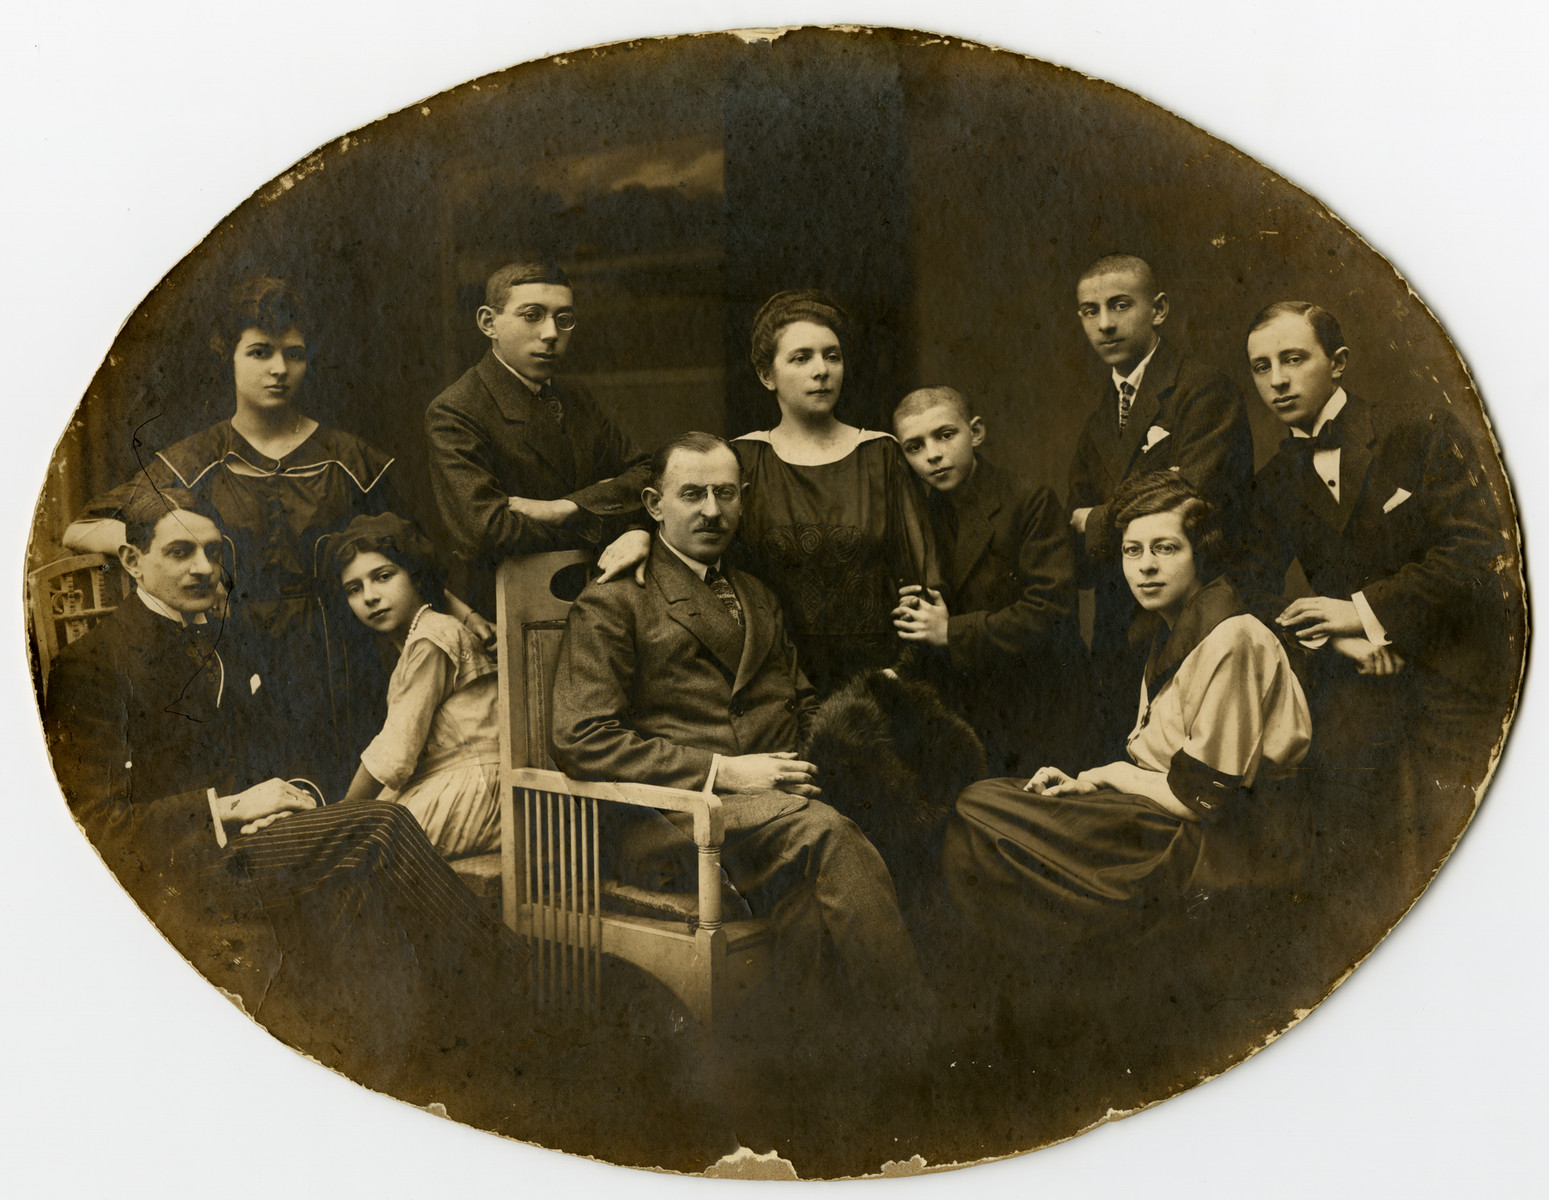 Studio portrait of the family of Wolf Percik.   Pictured from left to right are (standing) Rosalie Percik Lubawski, Zygmunt Percik, Dora Percik, Ludwik Lew Percik, Maximilian Percik, and Henry Percik;  (seated) Stanislaw Lubawski, Irena Percik Rosenkrantz, Wolf Percik, and Felicia Percik.   Of the people pictured, only Irena Percik Rosenkrantz and Stanislaw Lubawski survived the Holocaust.